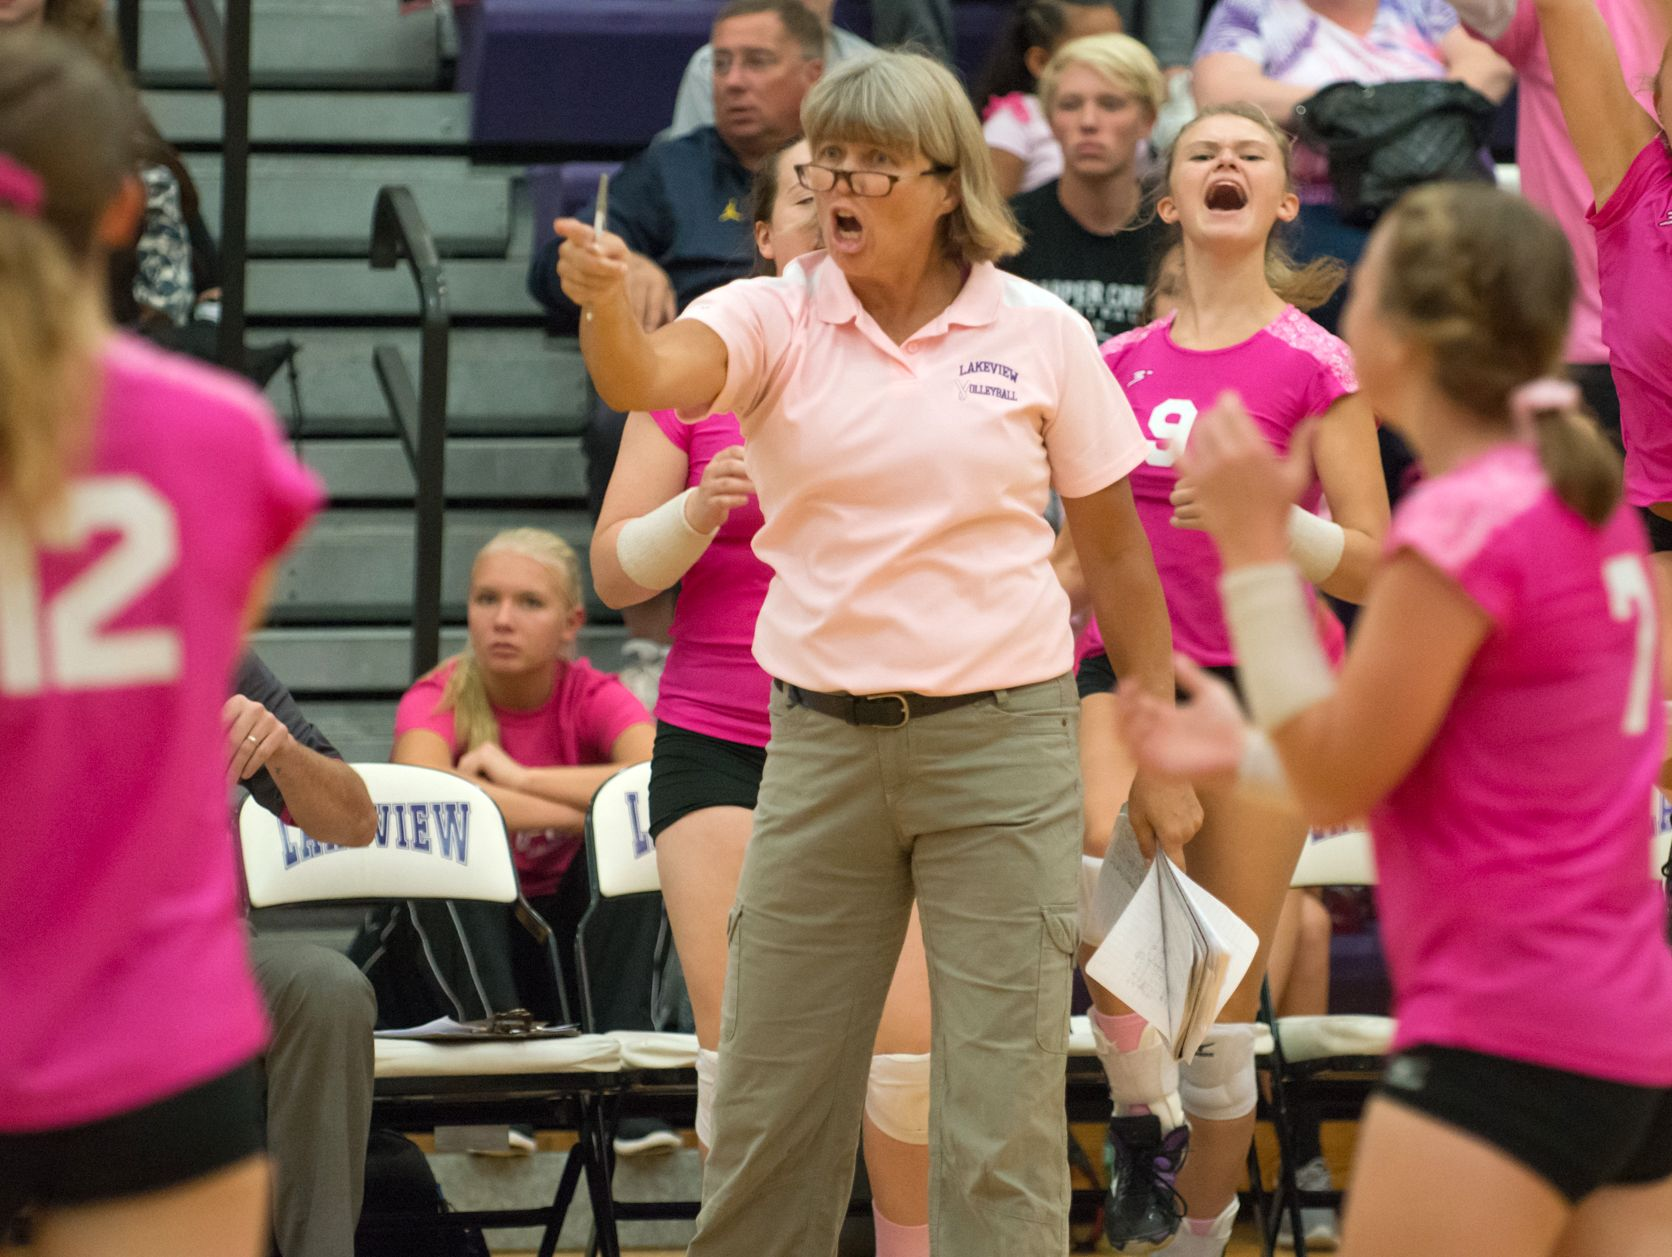 Lakeview head coach Heather Sawyer signals to her players as they win the first match against Mattawan Wednesday night, 30 to 28.